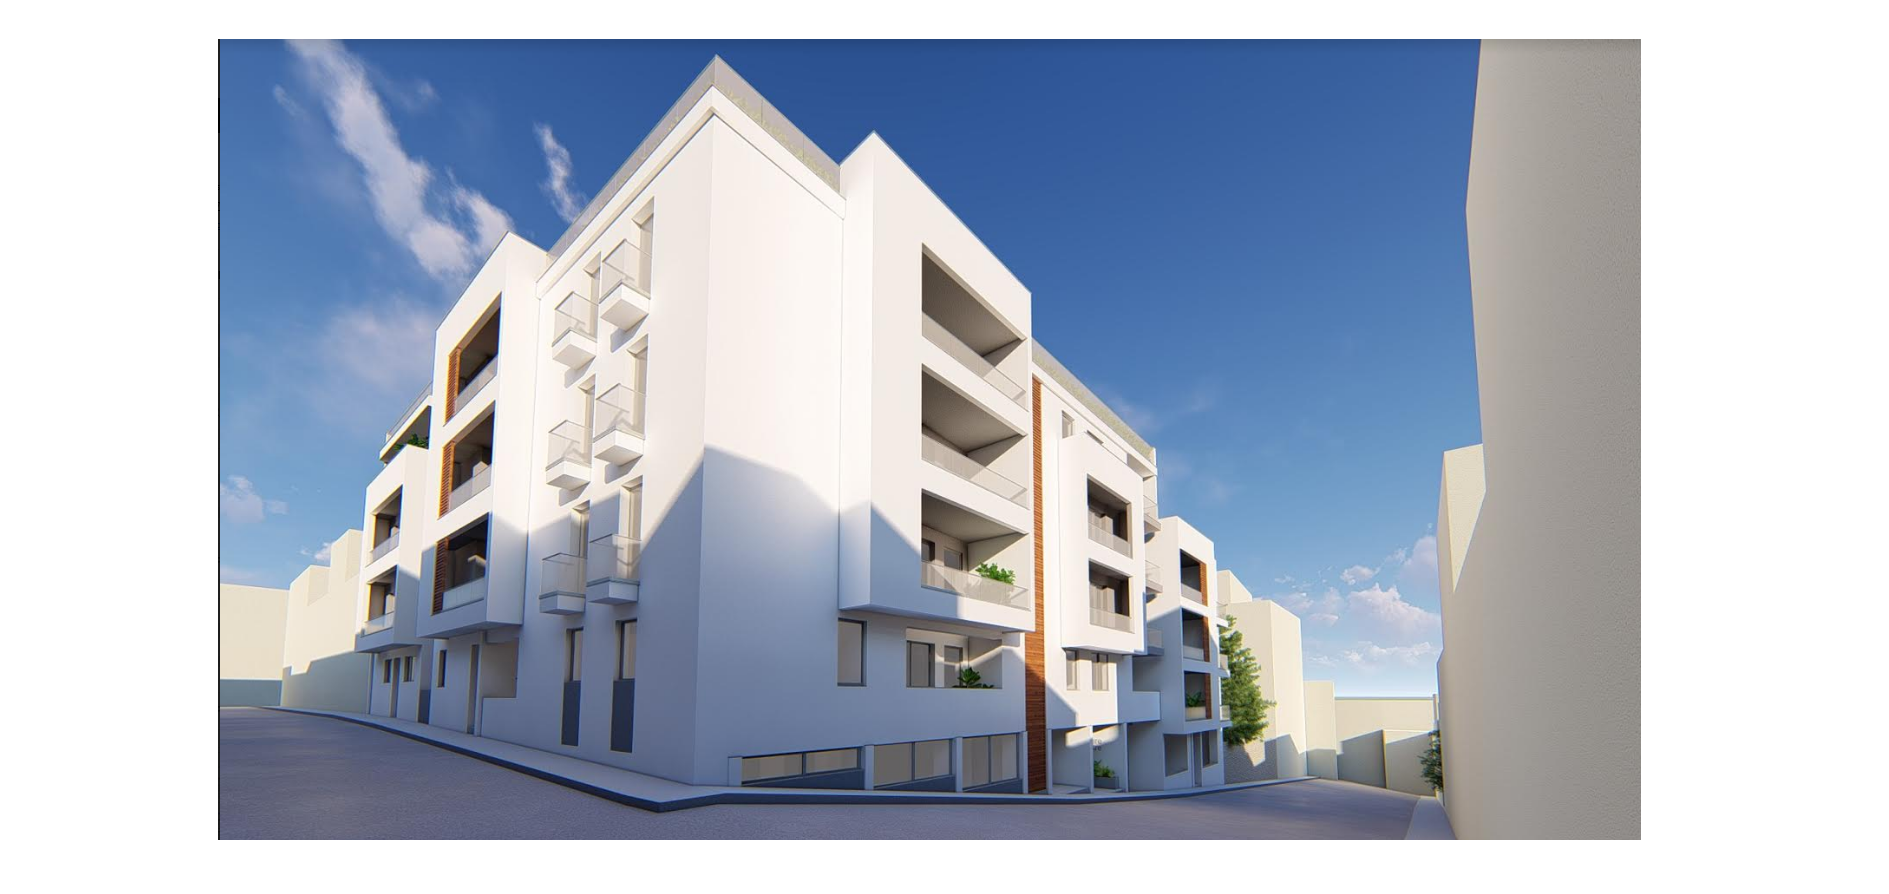 malta real estate: New block